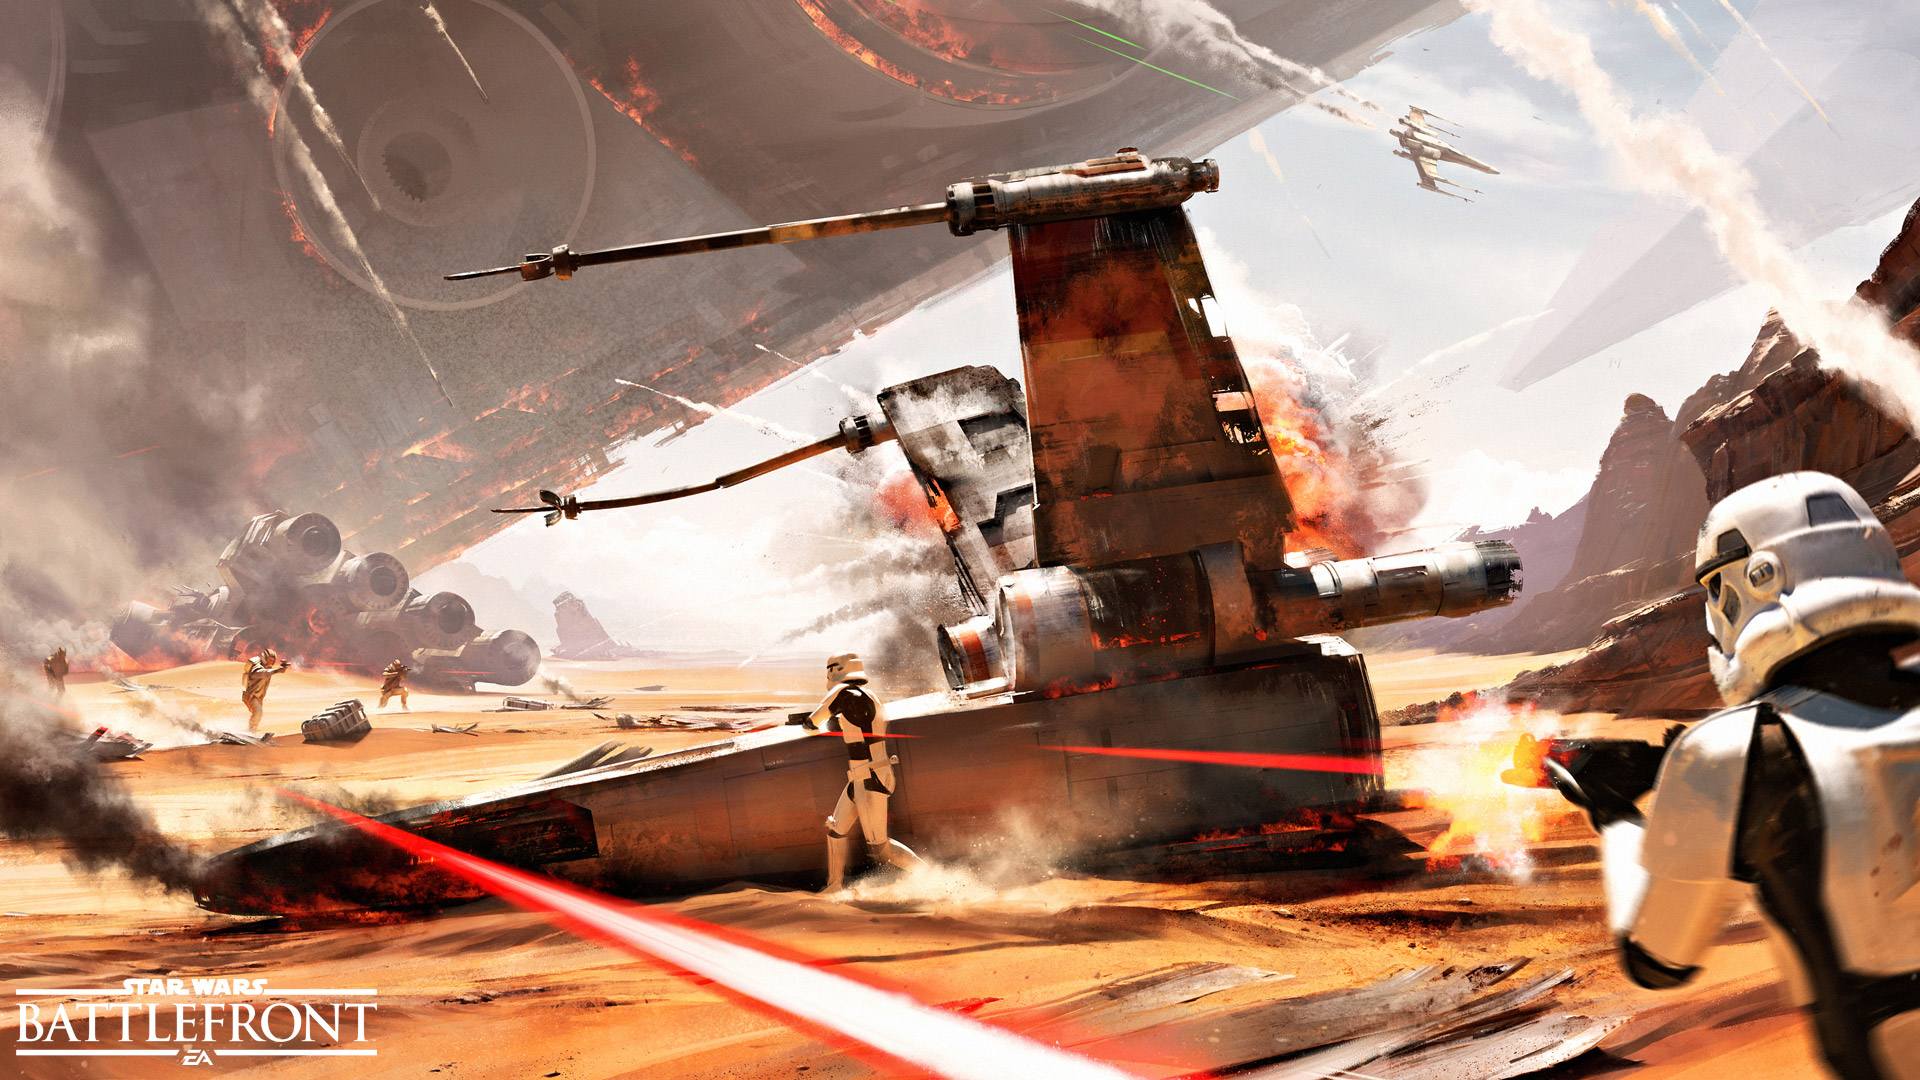 Concept art for the Battle of Jakku